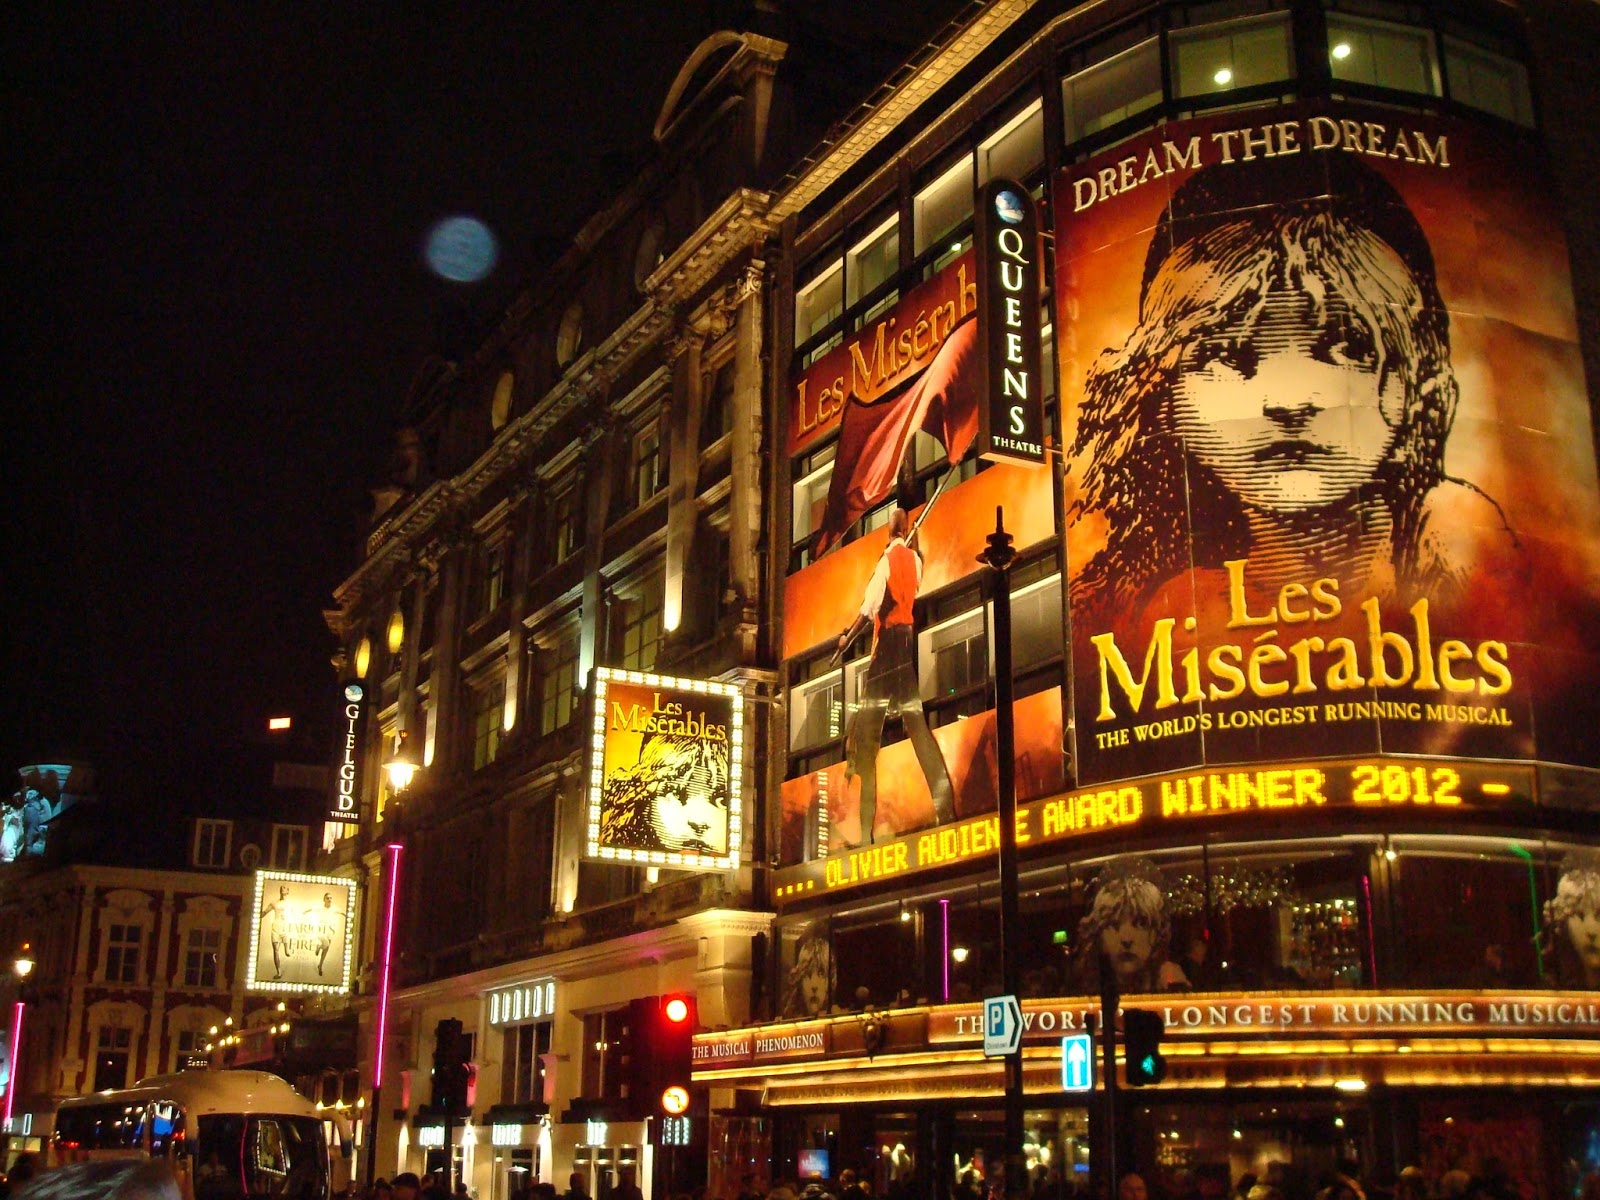 Les Miserables London Tickets And Hotel